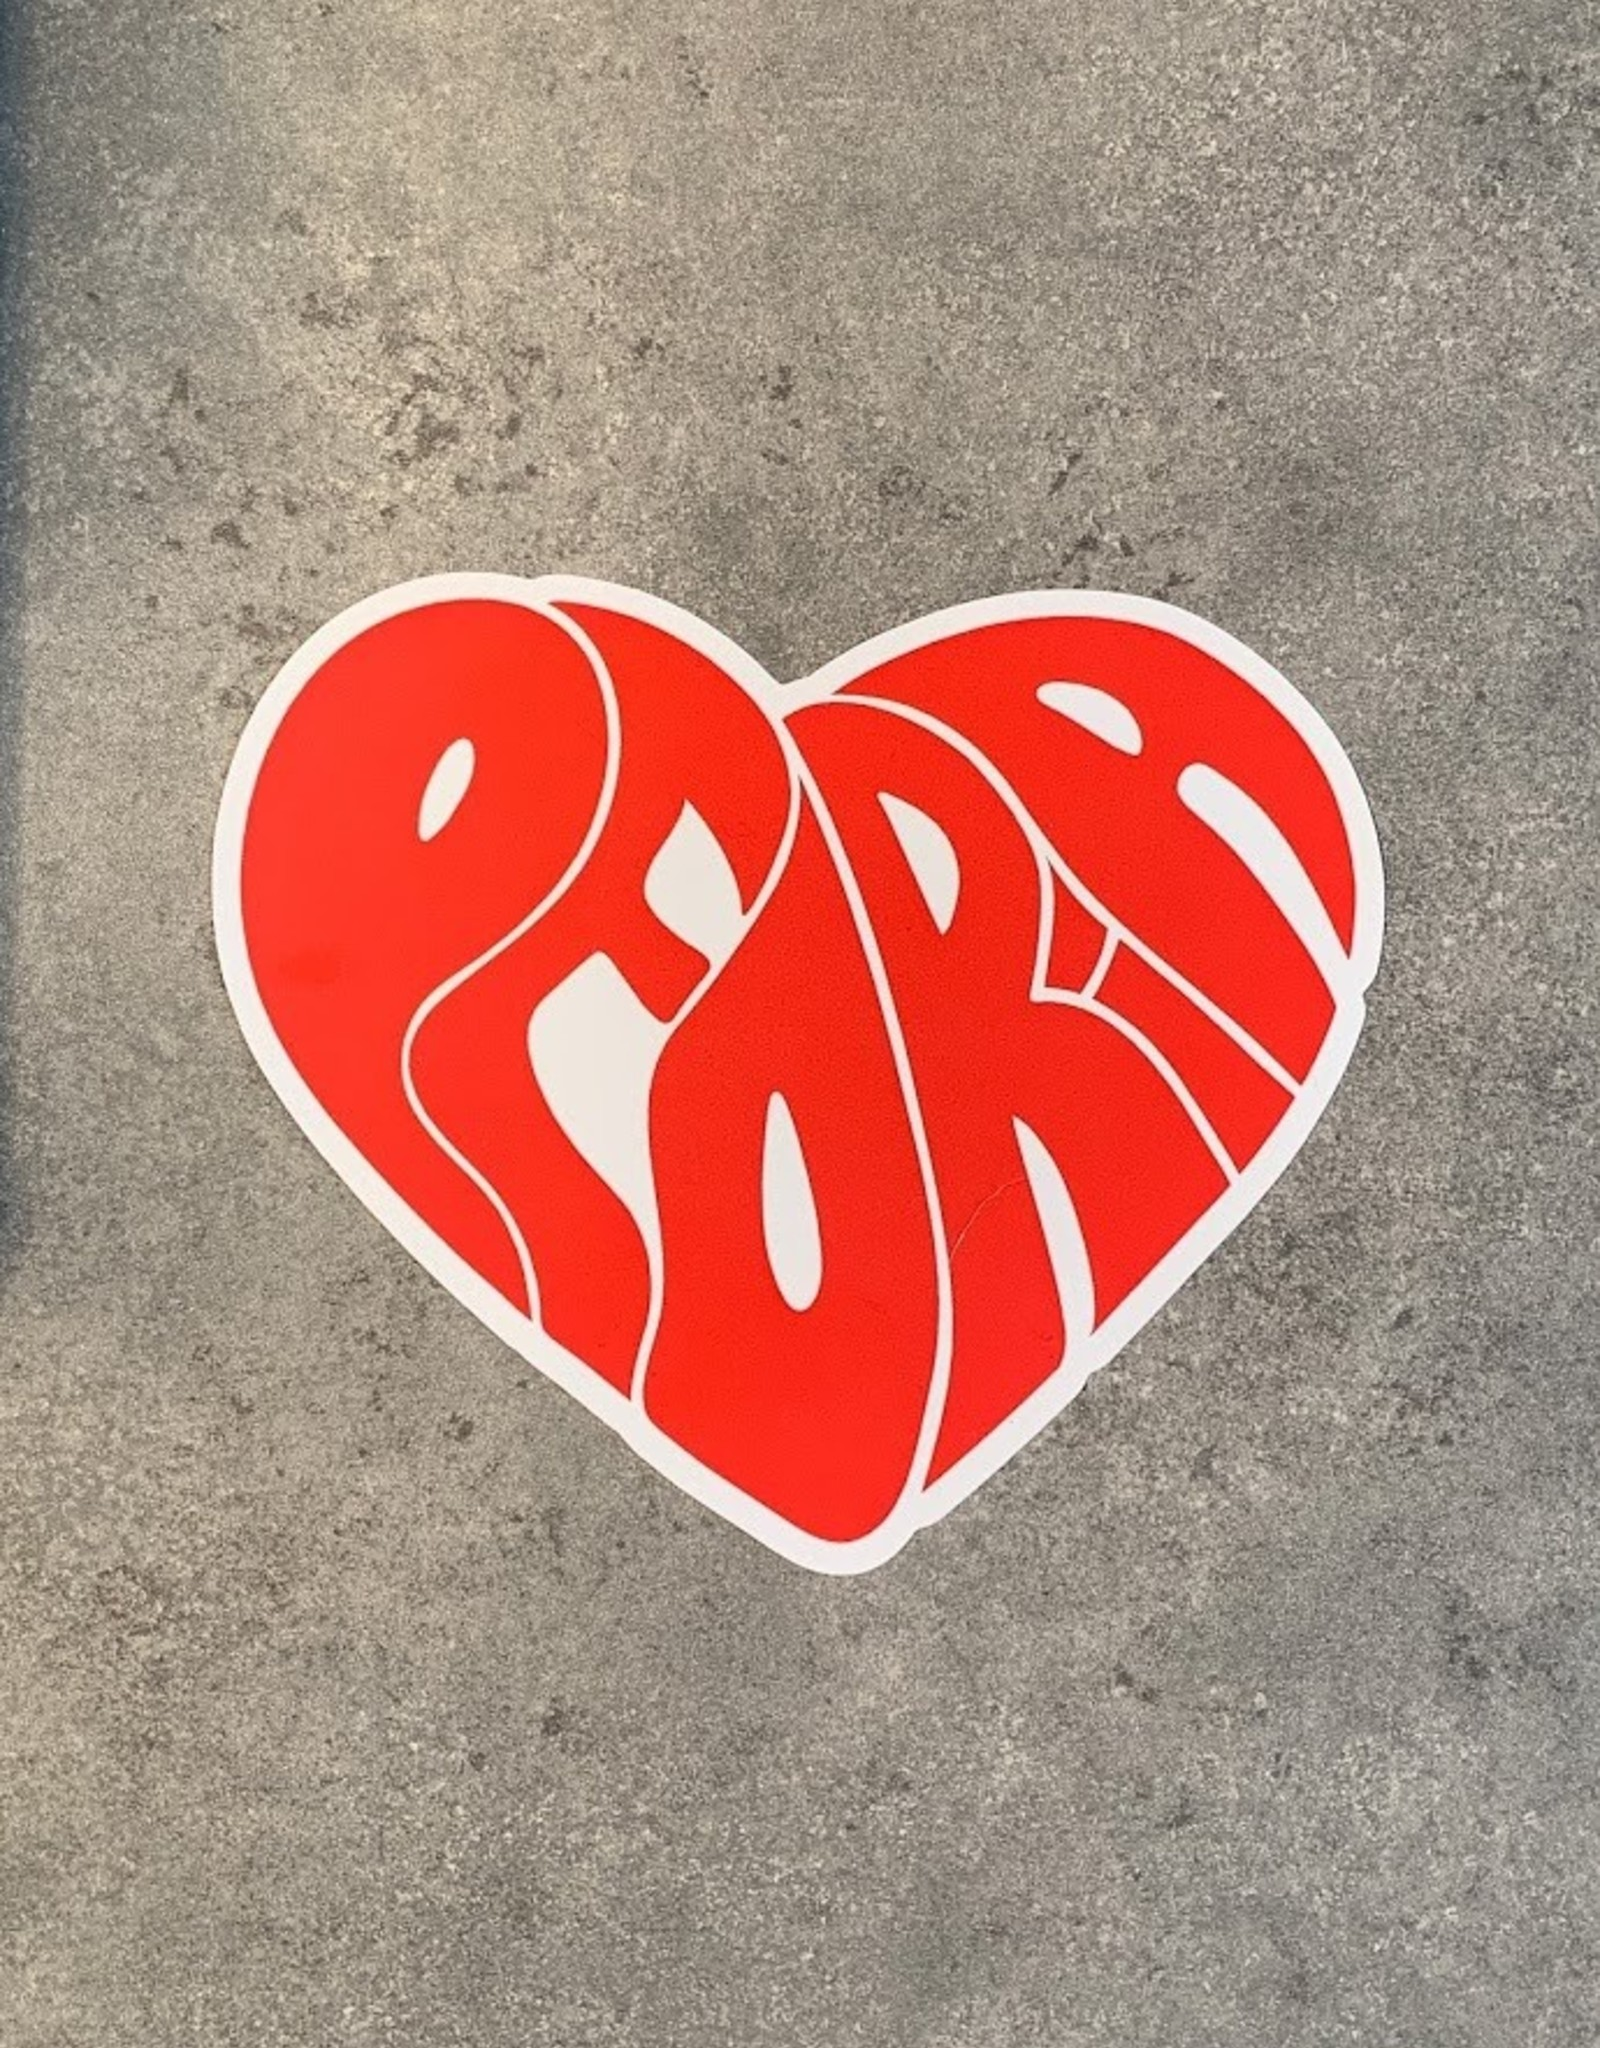 UA Merch Peoria Groovy Red Heart Decal